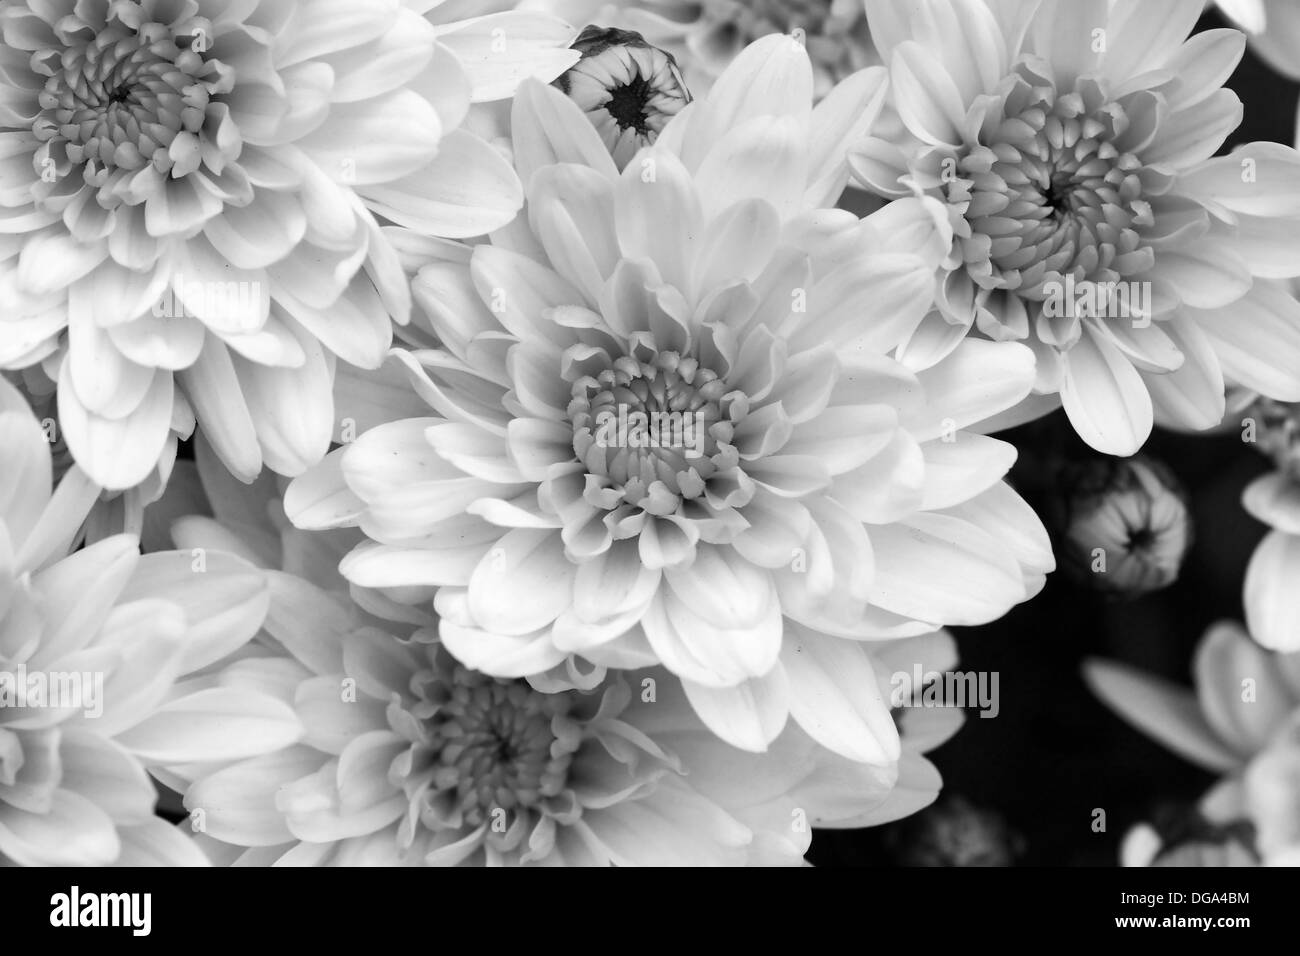 White mums stock photos white mums stock images alamy black and white mums flowers beautiful floral background stock image mightylinksfo